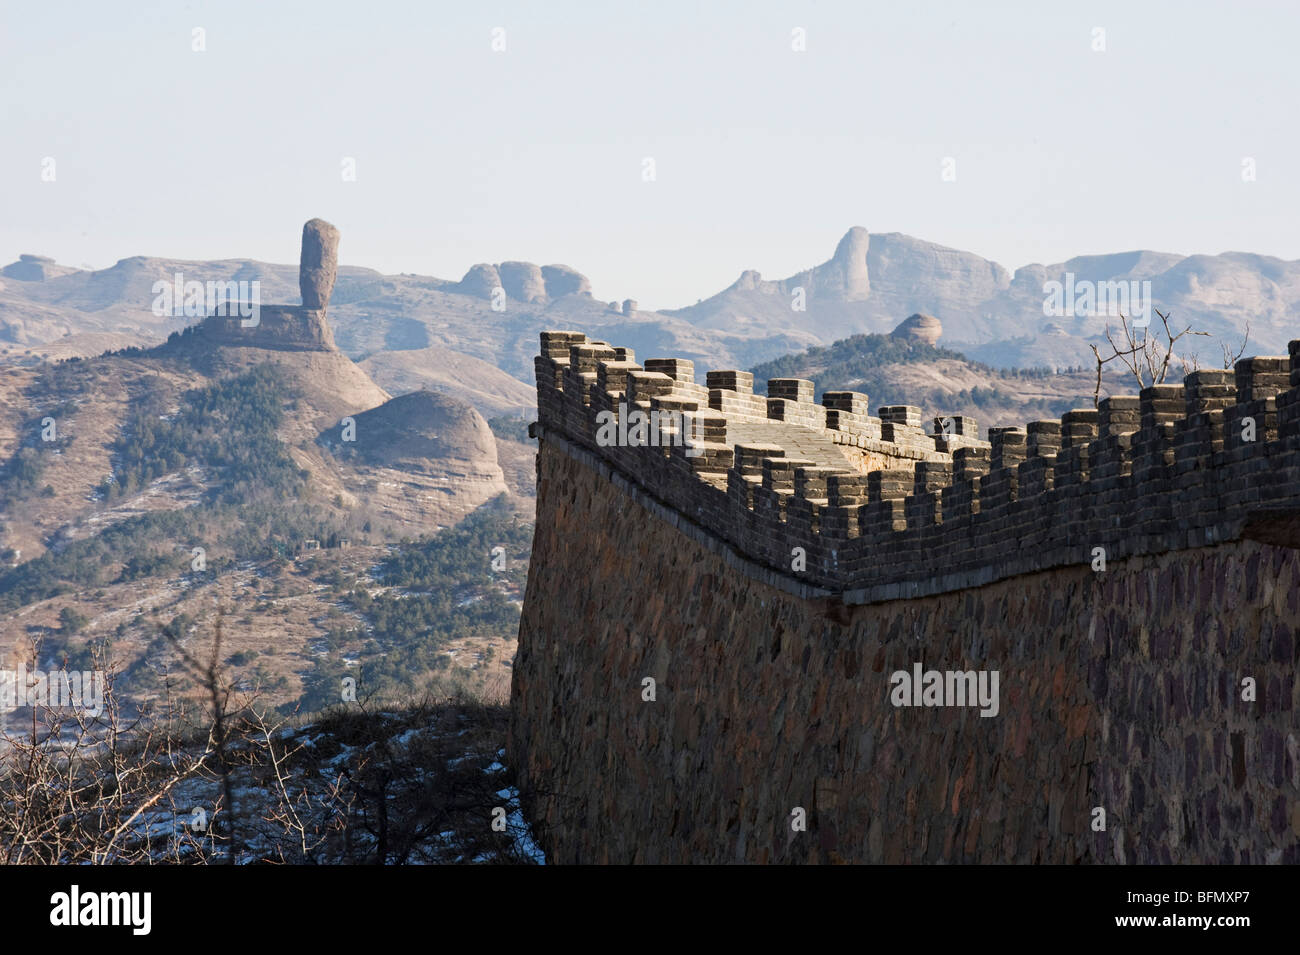 China, Hebei Province, Chengde, city wall and mountain scenery - Stock Image